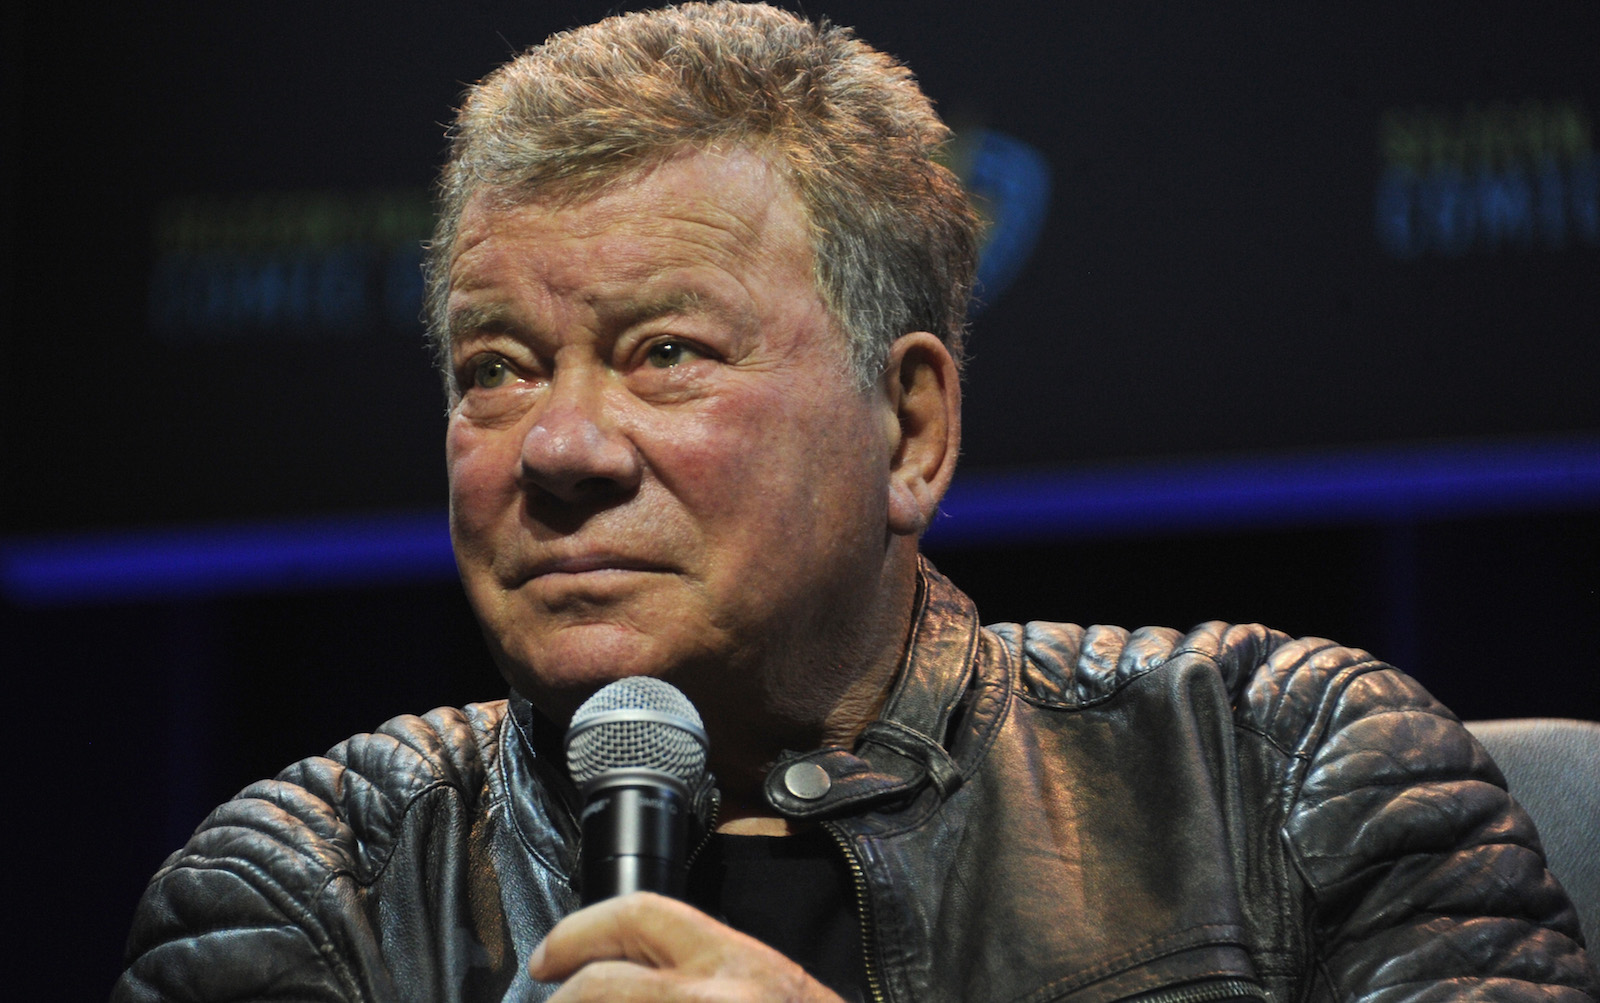 Go to the final frontier with William Shatner on a zero-gravity flight this summer